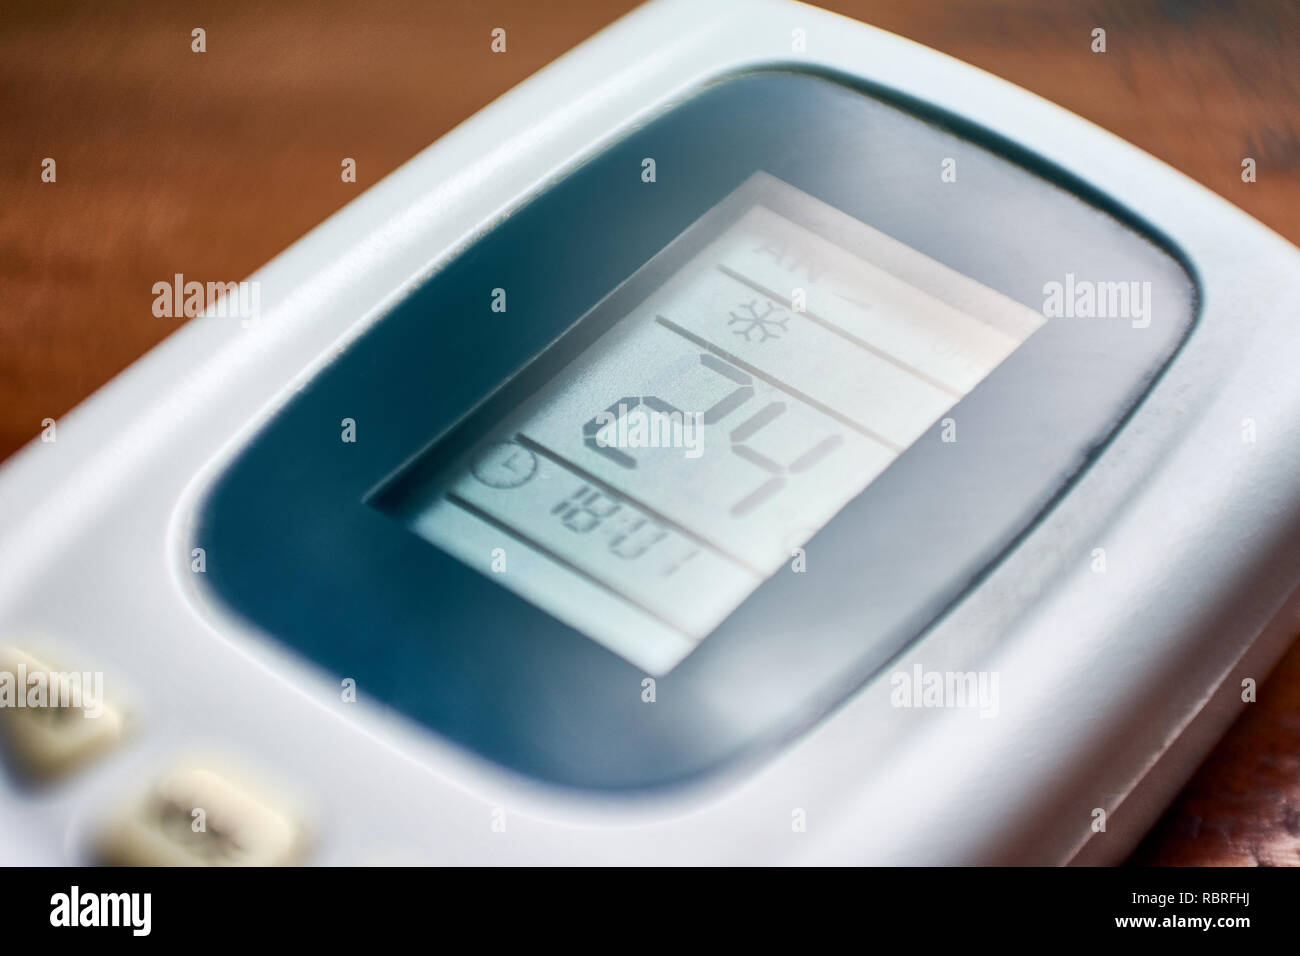 The remote control of an air conditioner set to 24 degrees celsius, a recommended setting to protect the environment. Stock Photo